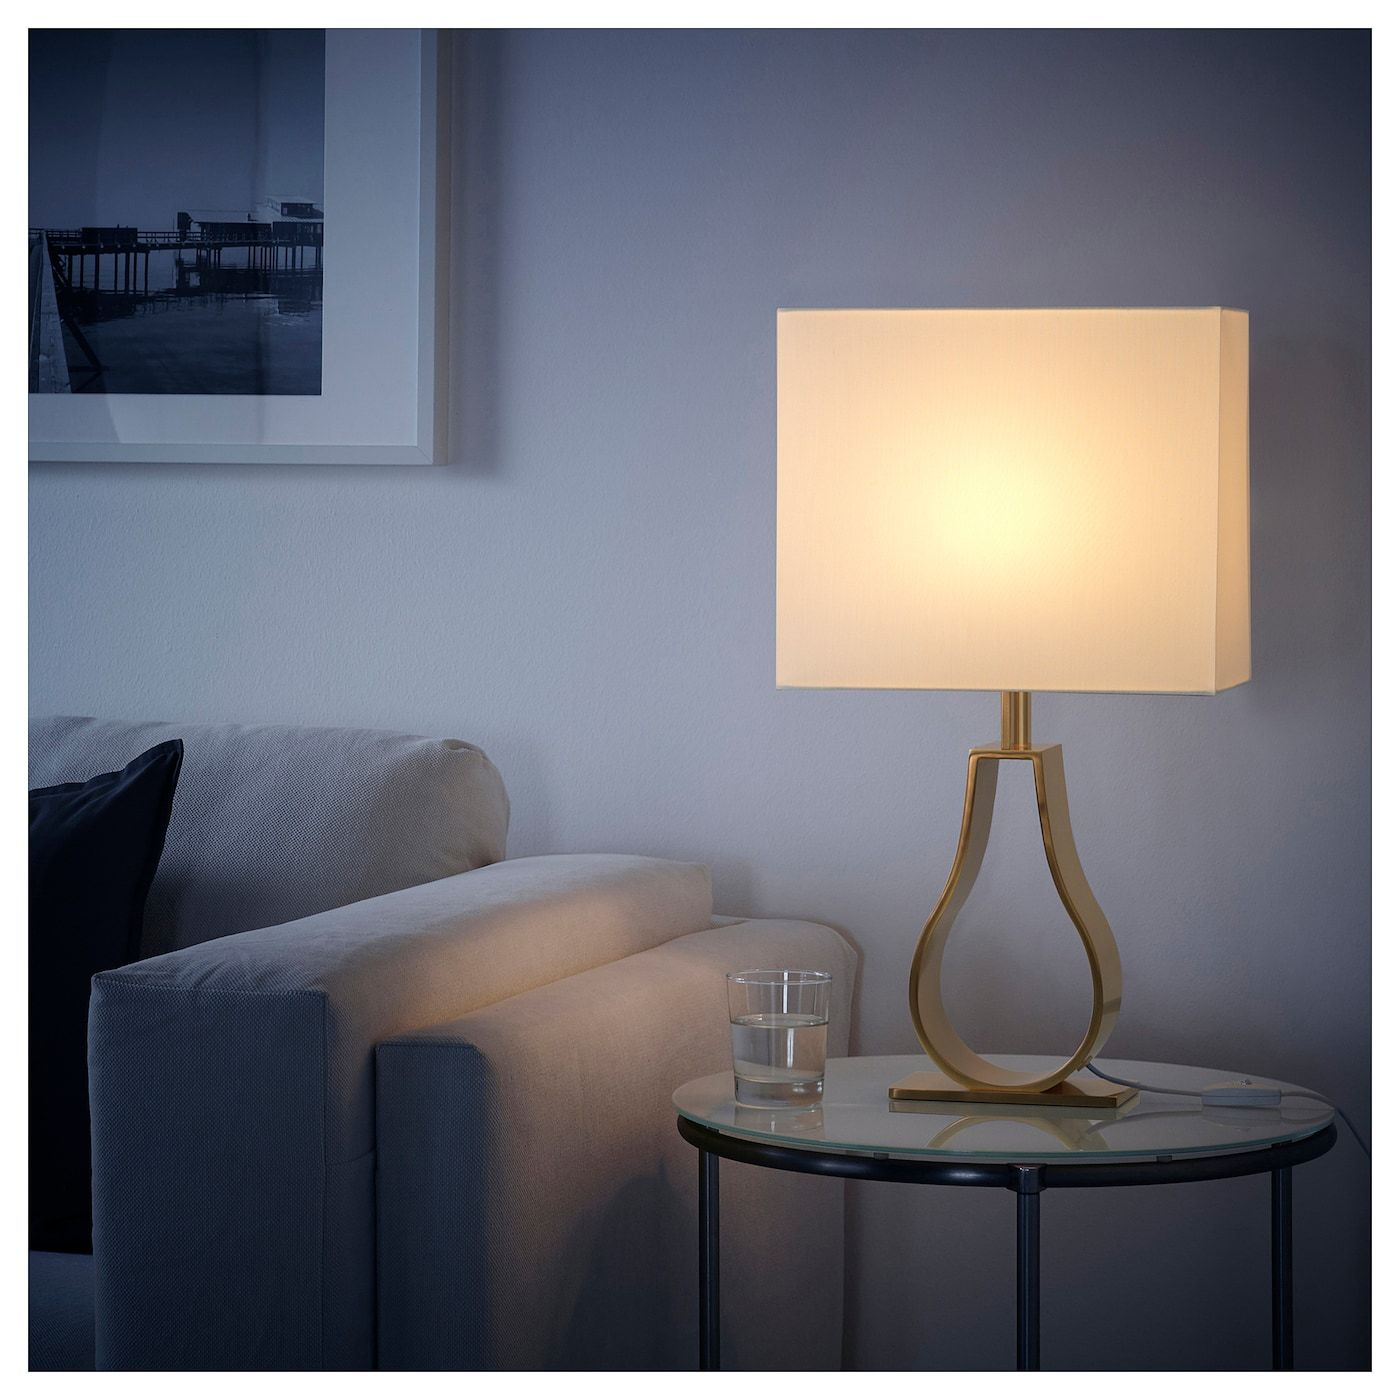 IKEA KLABB OffWhite, Brass Color Table lamp with LED bulb